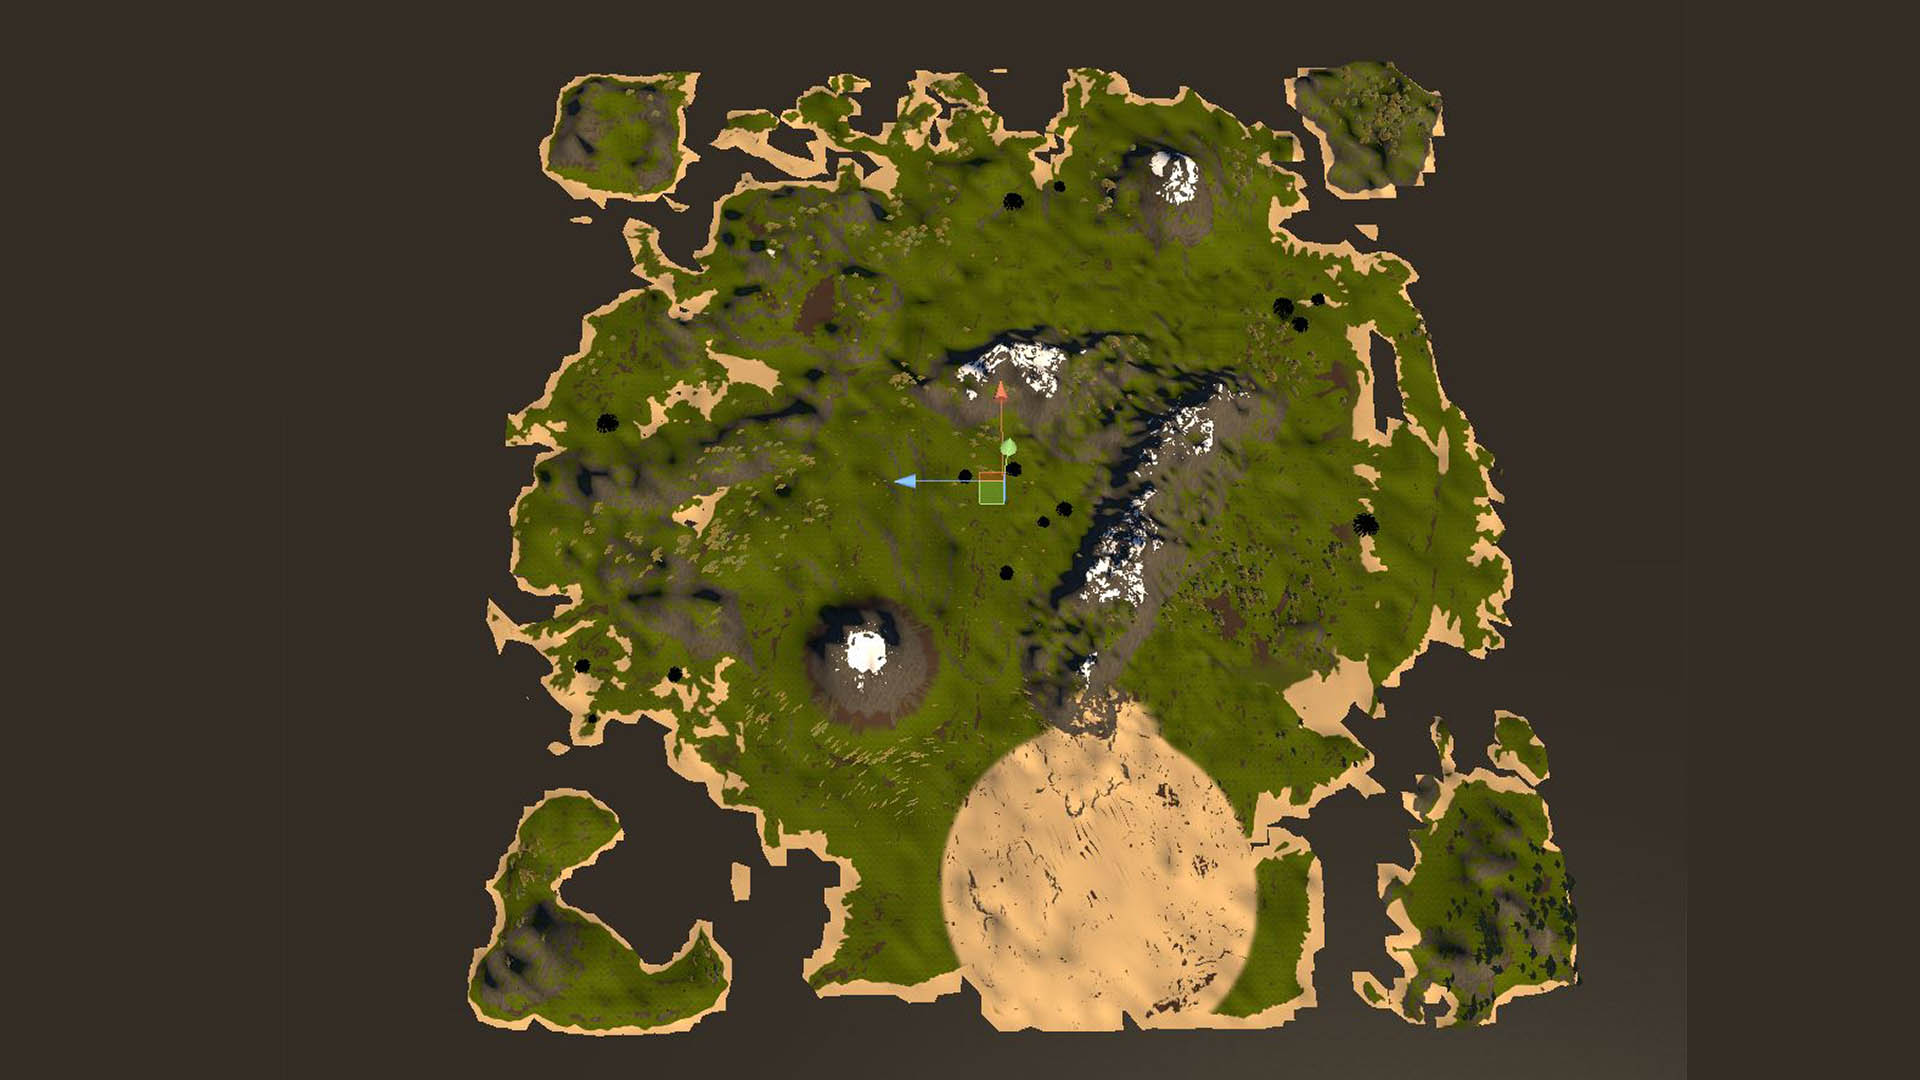 hg ruins of alph how to get to the grass